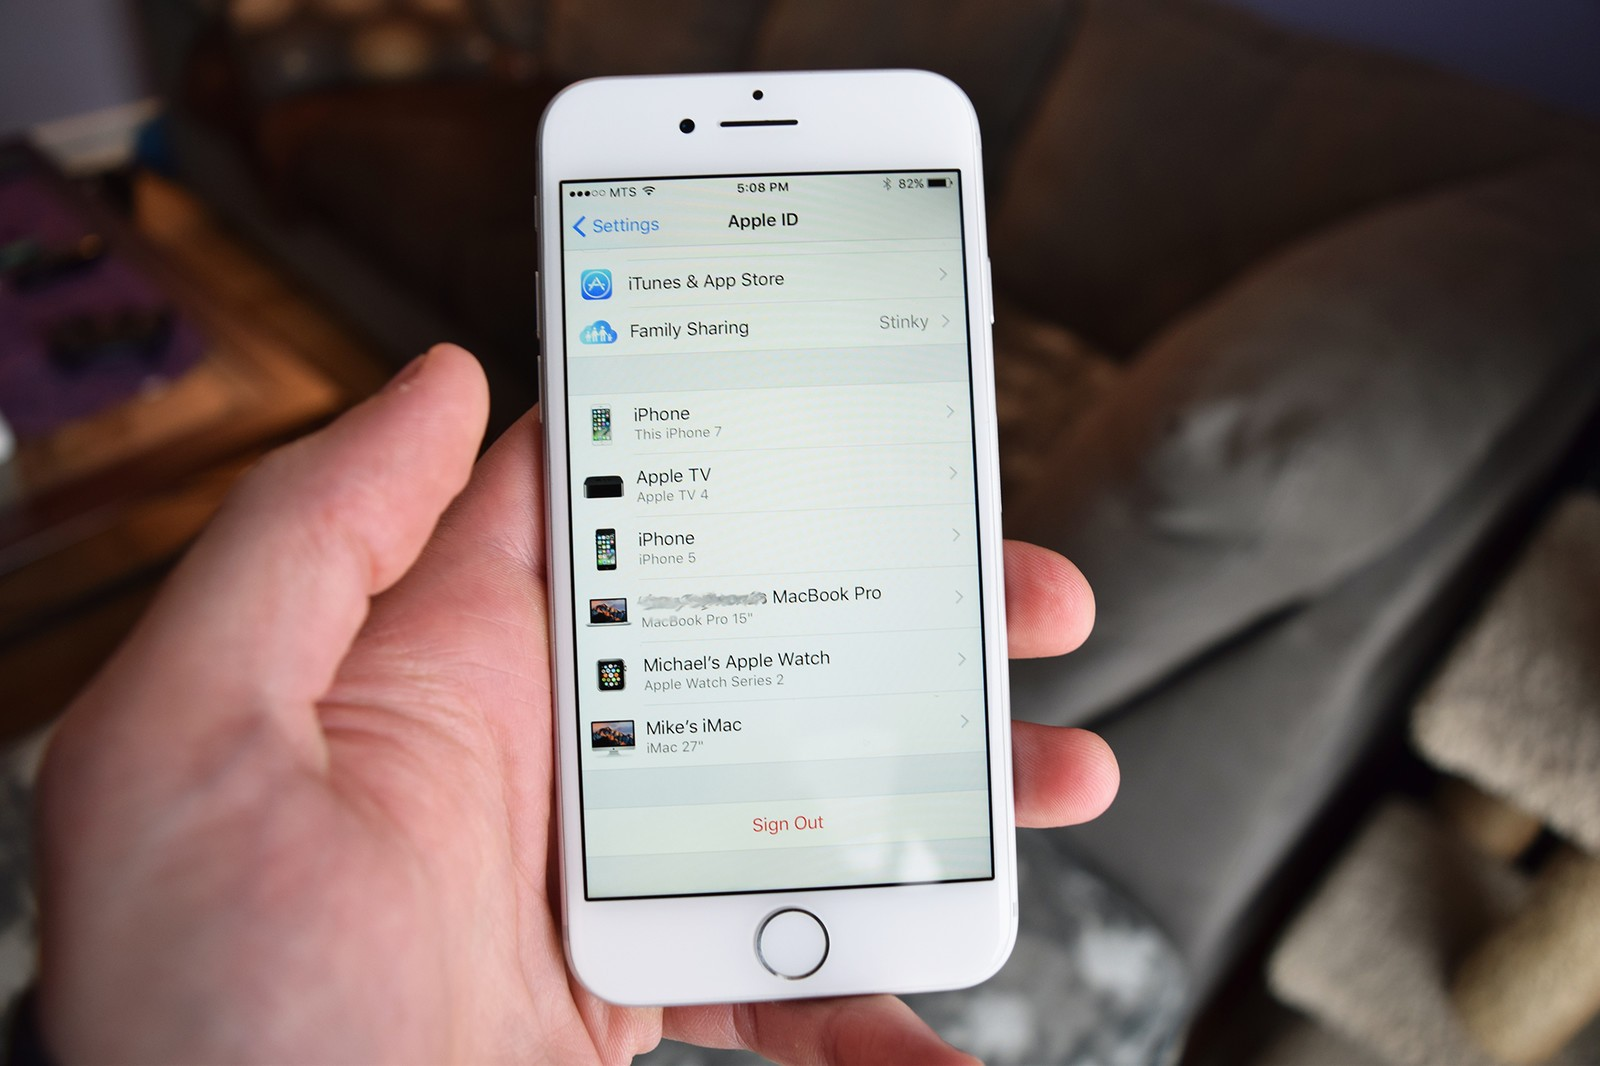 How to manage iCloud devices on iPhone and iPad